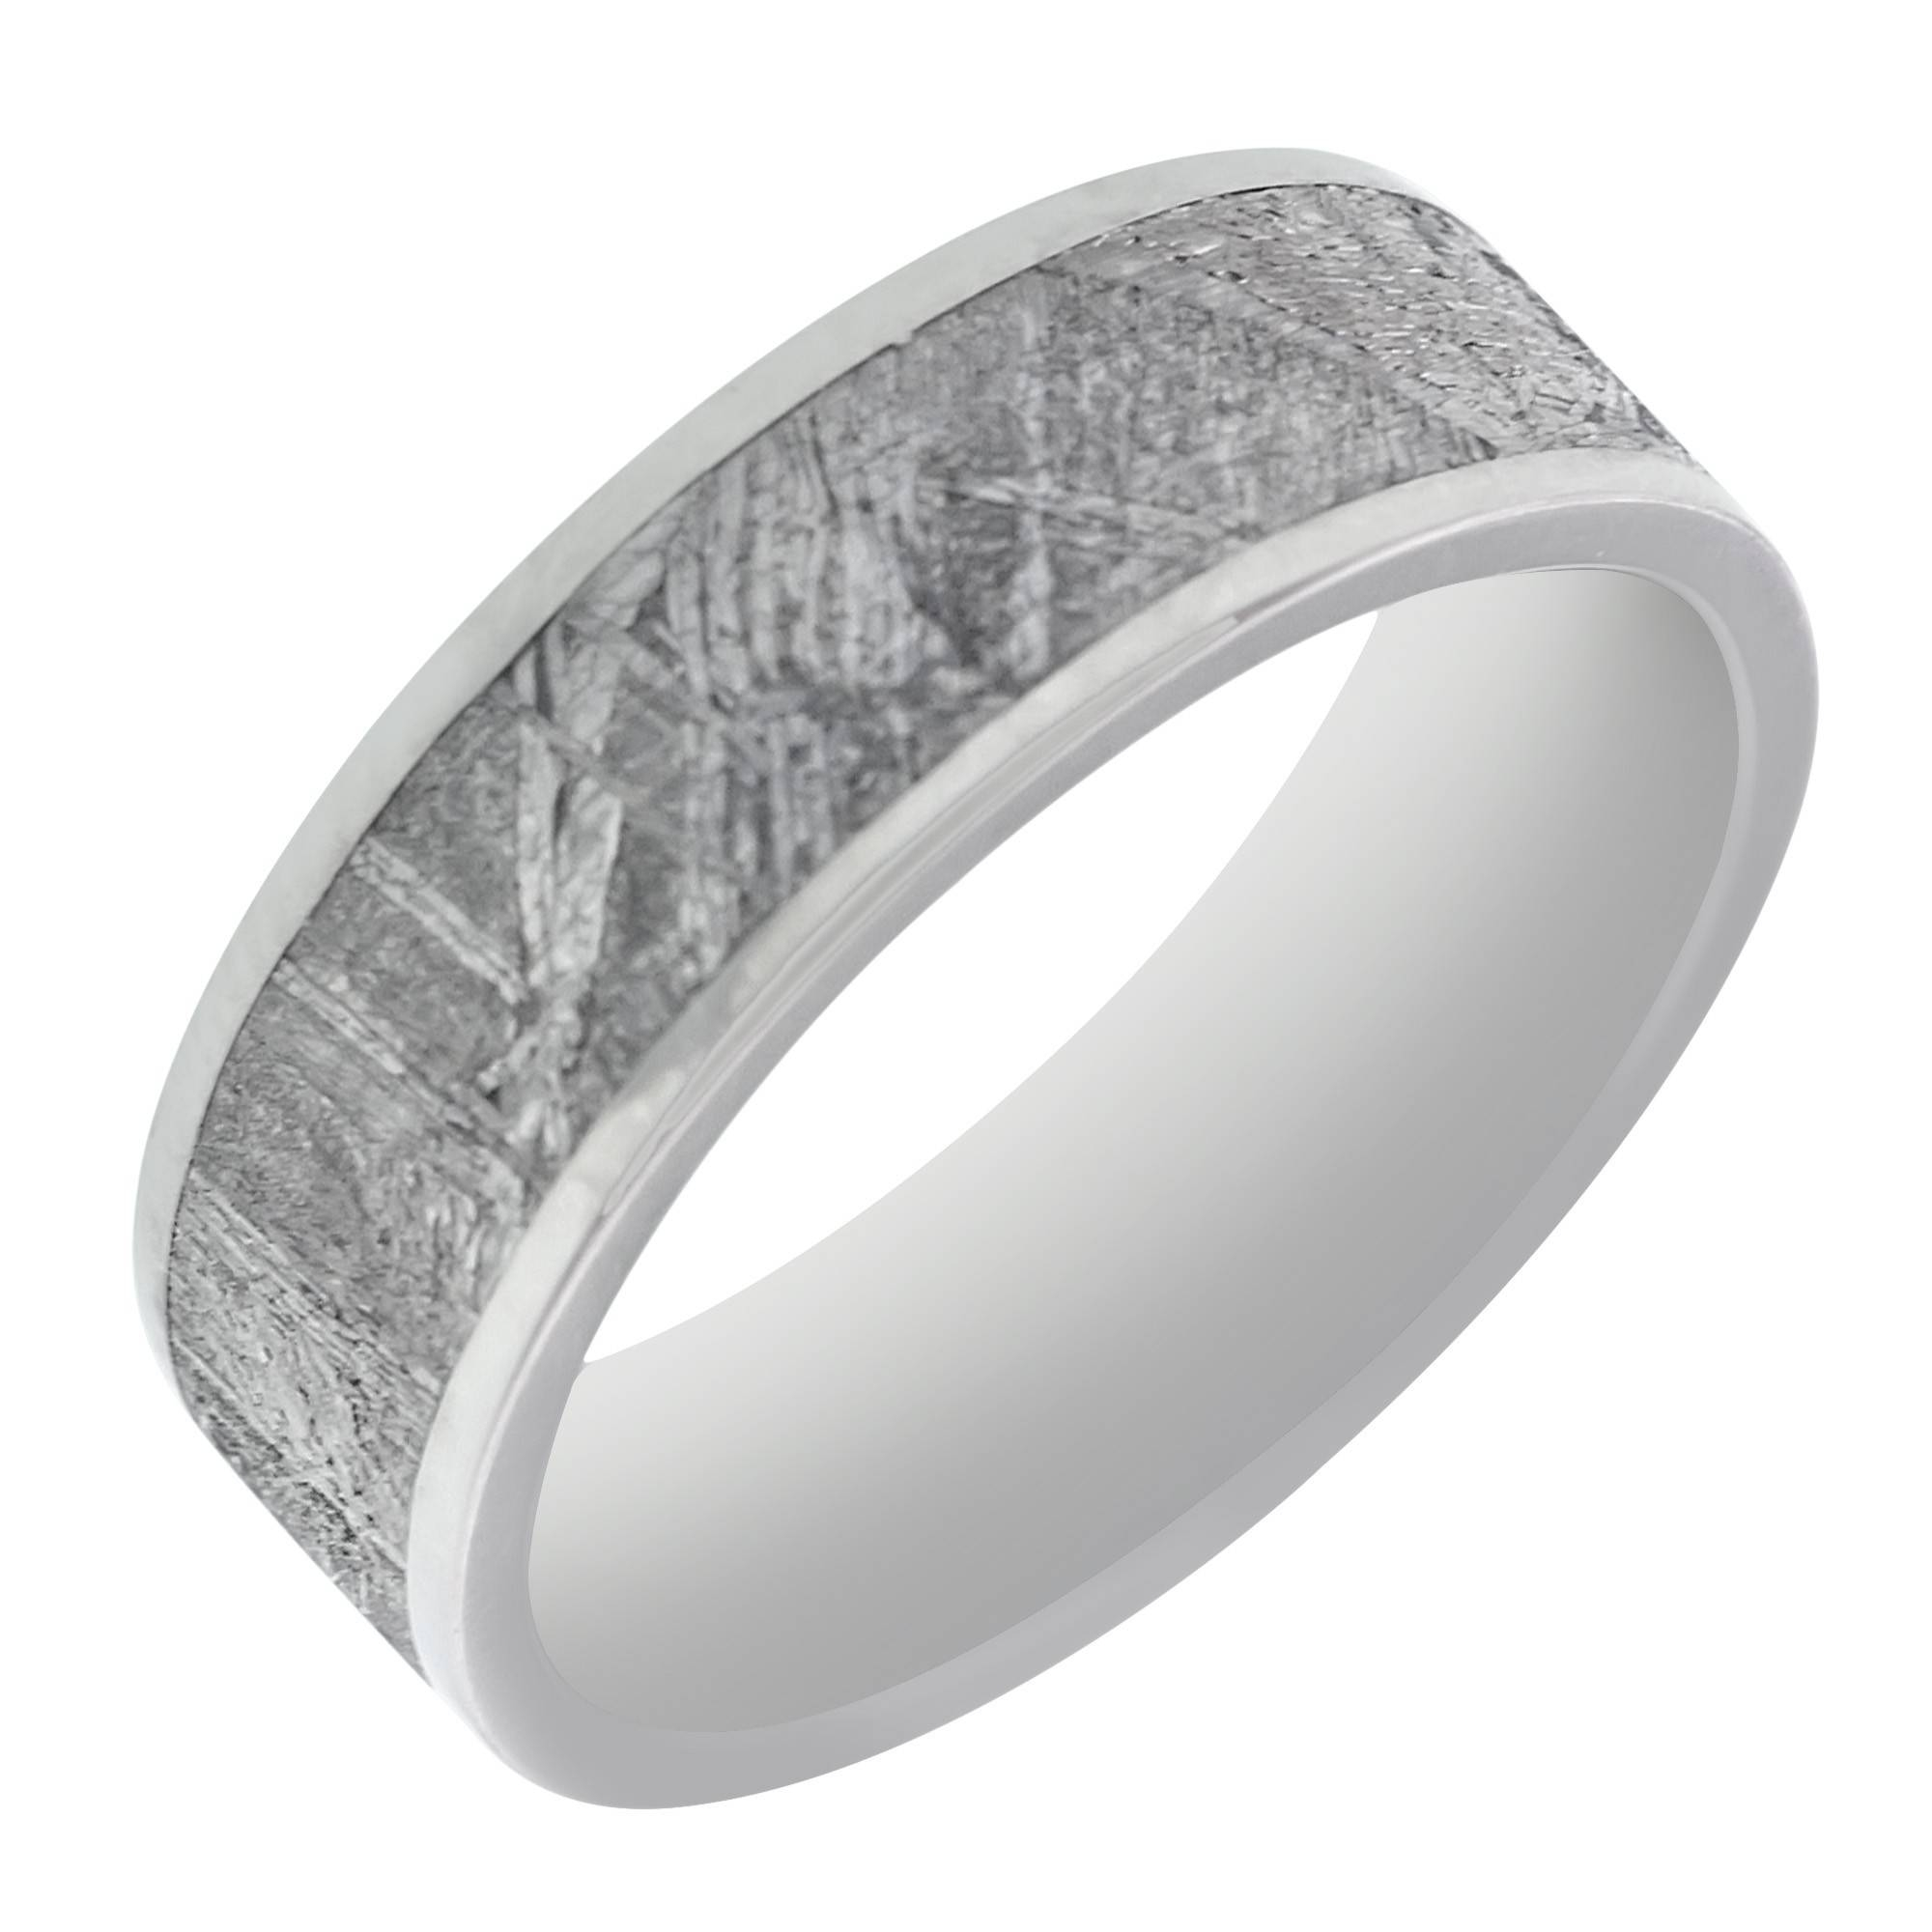 Mens Meteorite Wedding Band In Titanium (7mm) Intended For Men's Wedding Bands Meteorite (View 6 of 15)